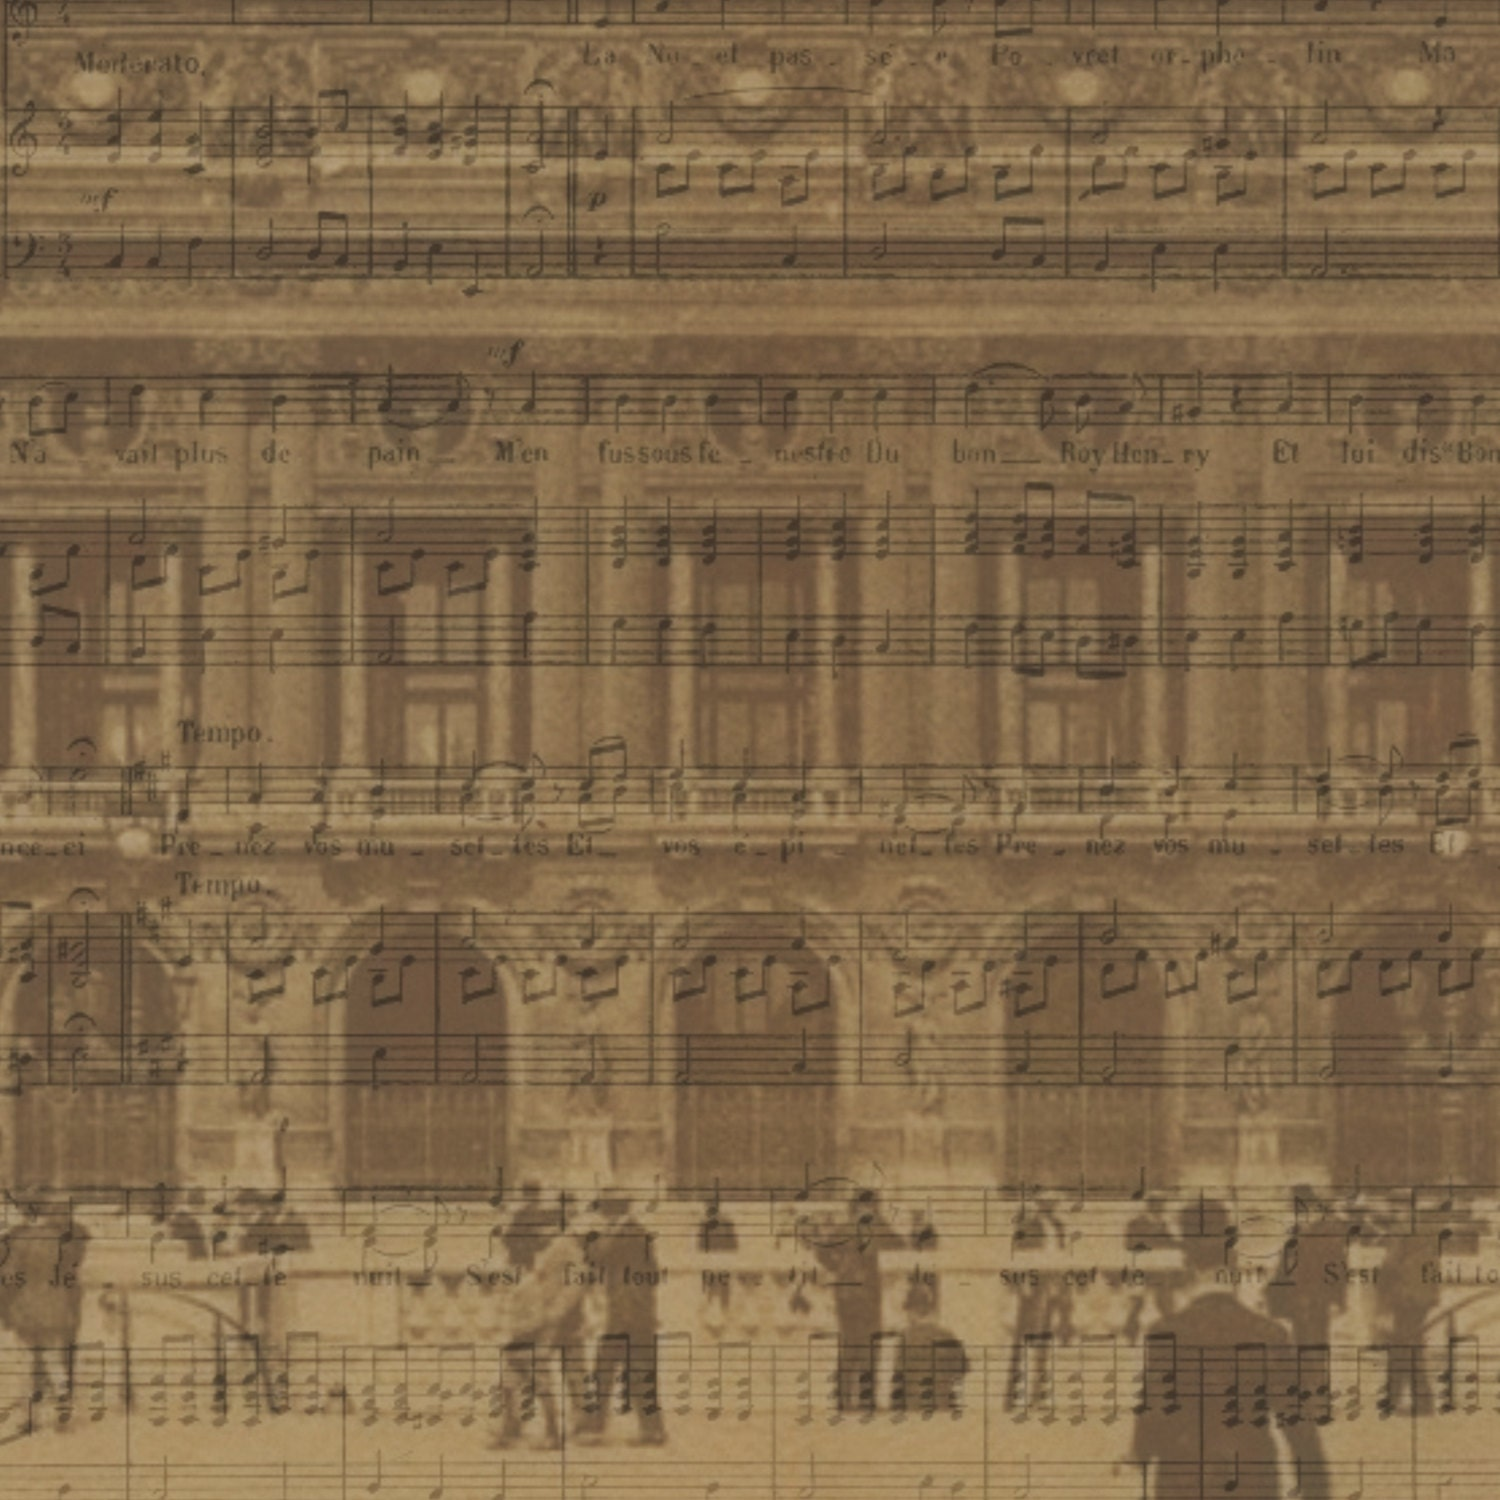 Paris opera house sheet music background paper by greyslion for Commercial house music